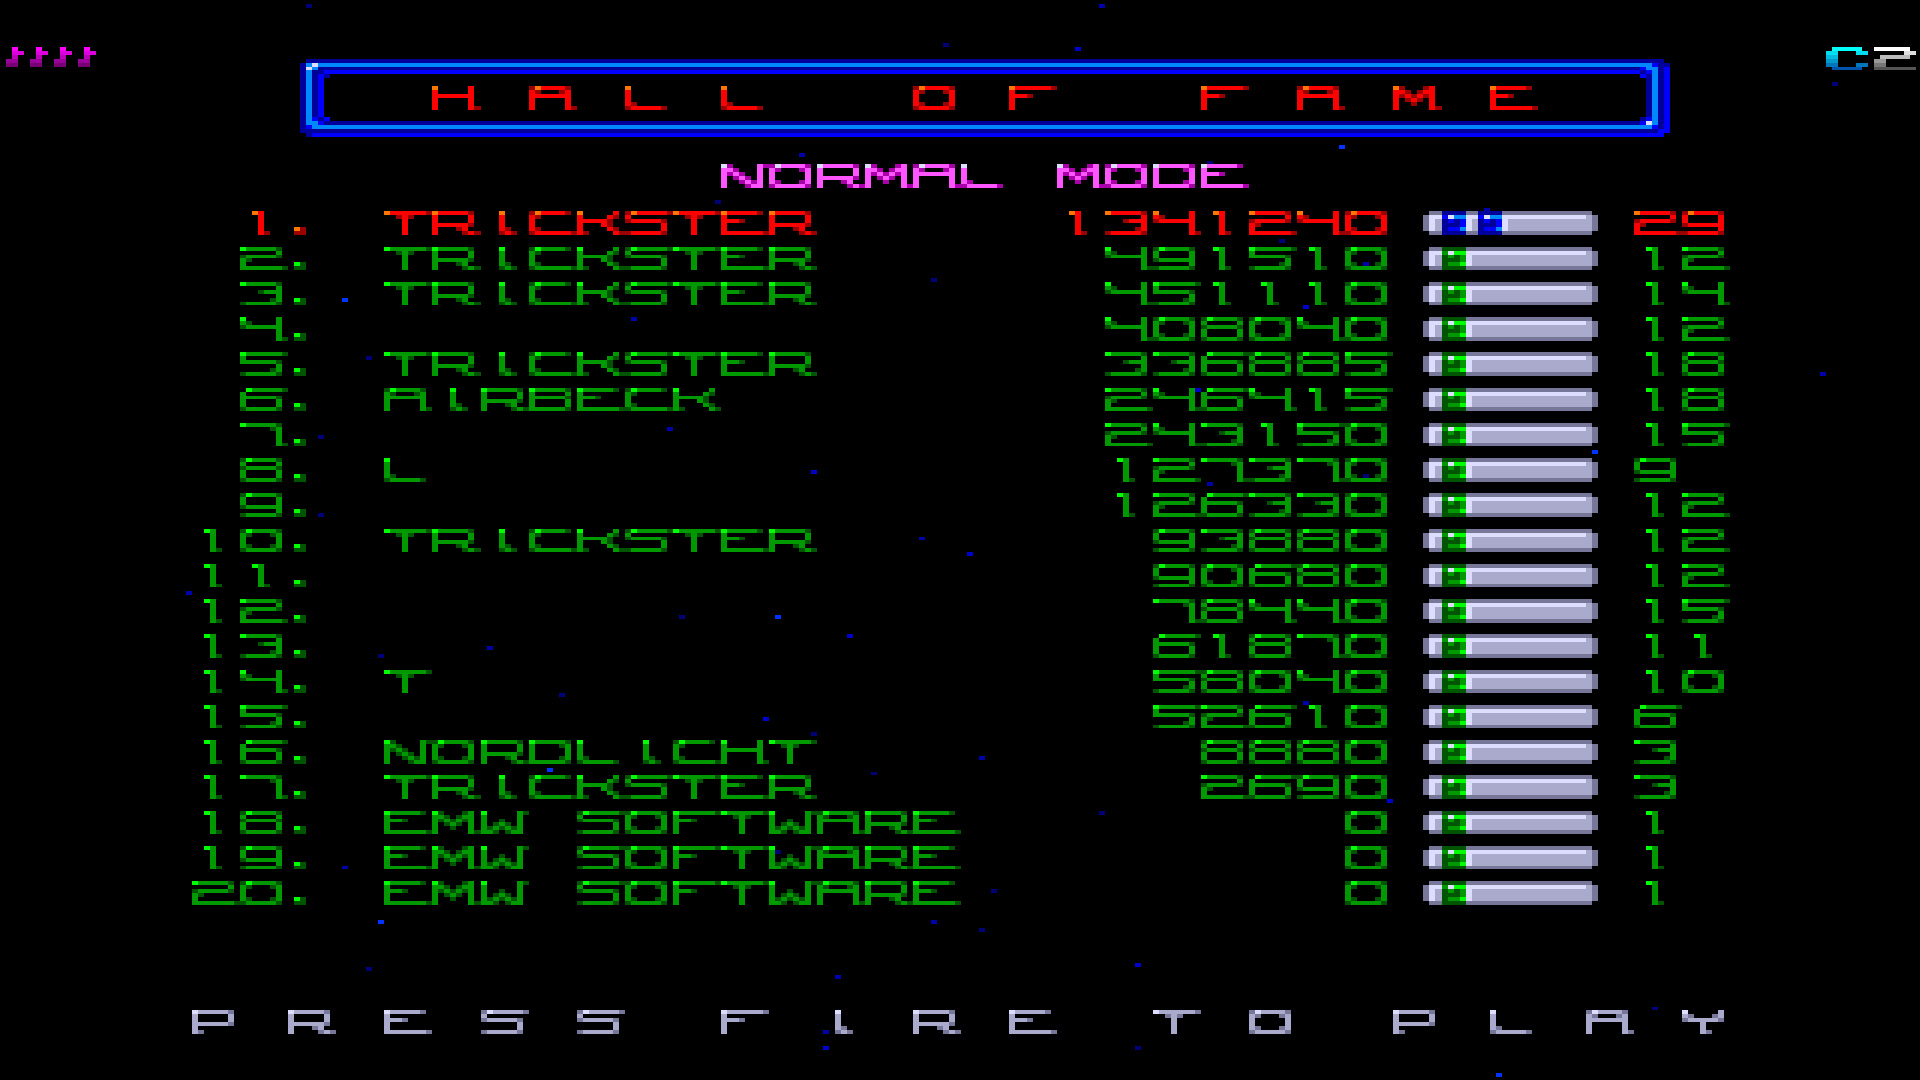 Deluxe Galaga: Normal 1,341,240 points